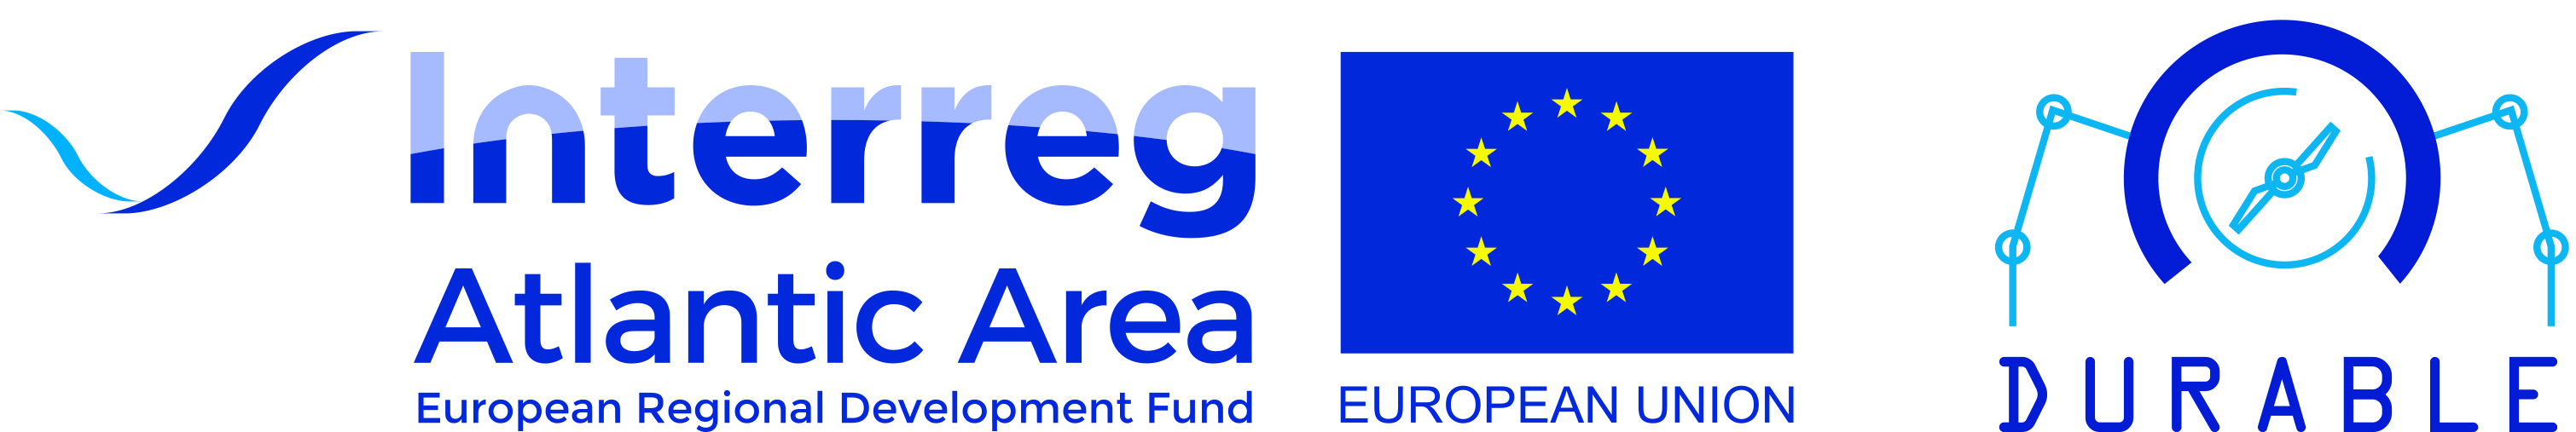 LOGO DURABLE interreg